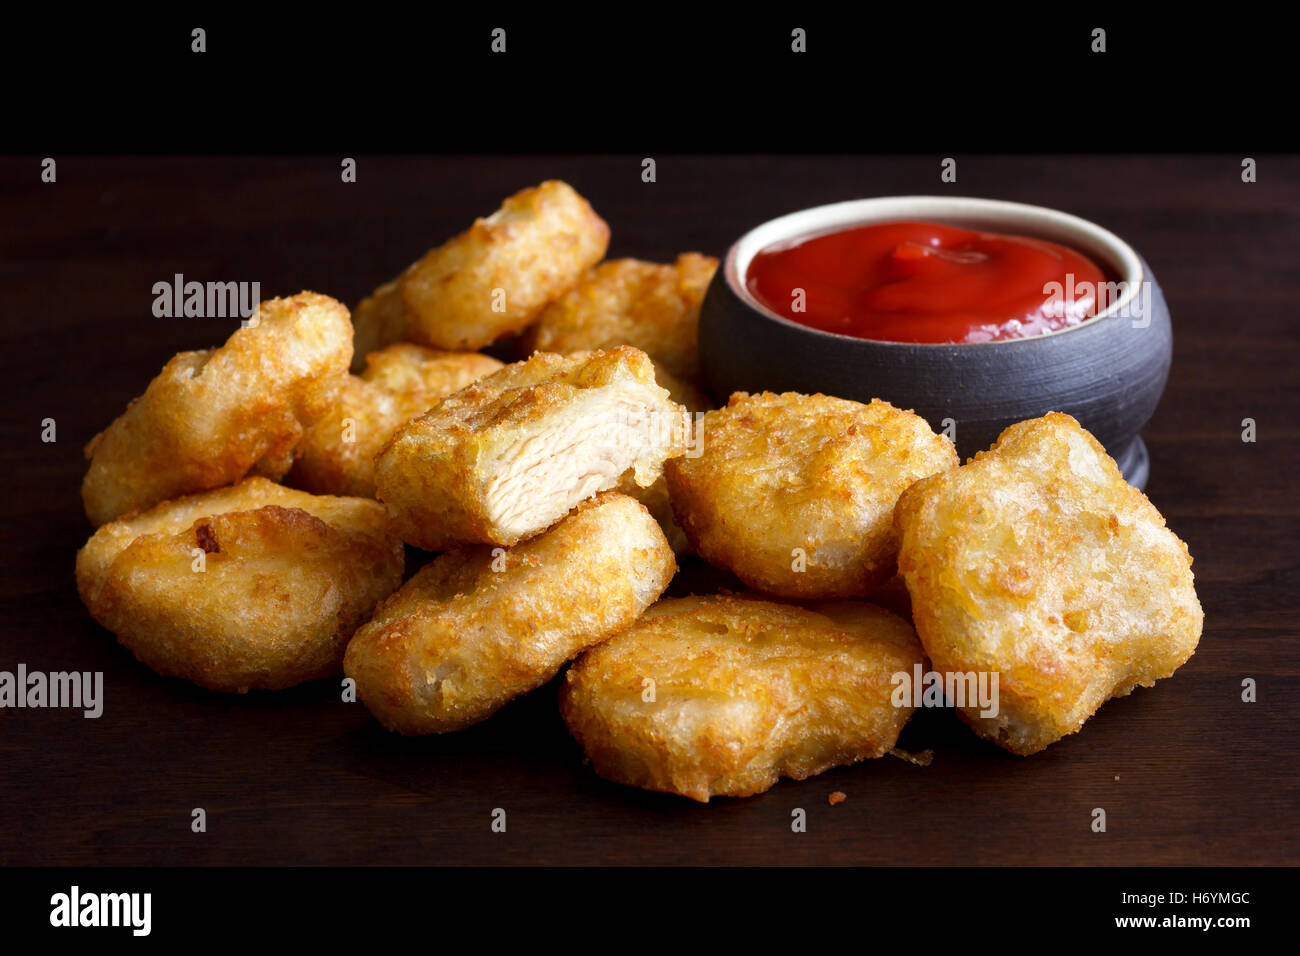 Pile of golden deep-fried battered chicken nuggets with empty rustic bowl on dark wood. One cut with meat showing. - Stock Image